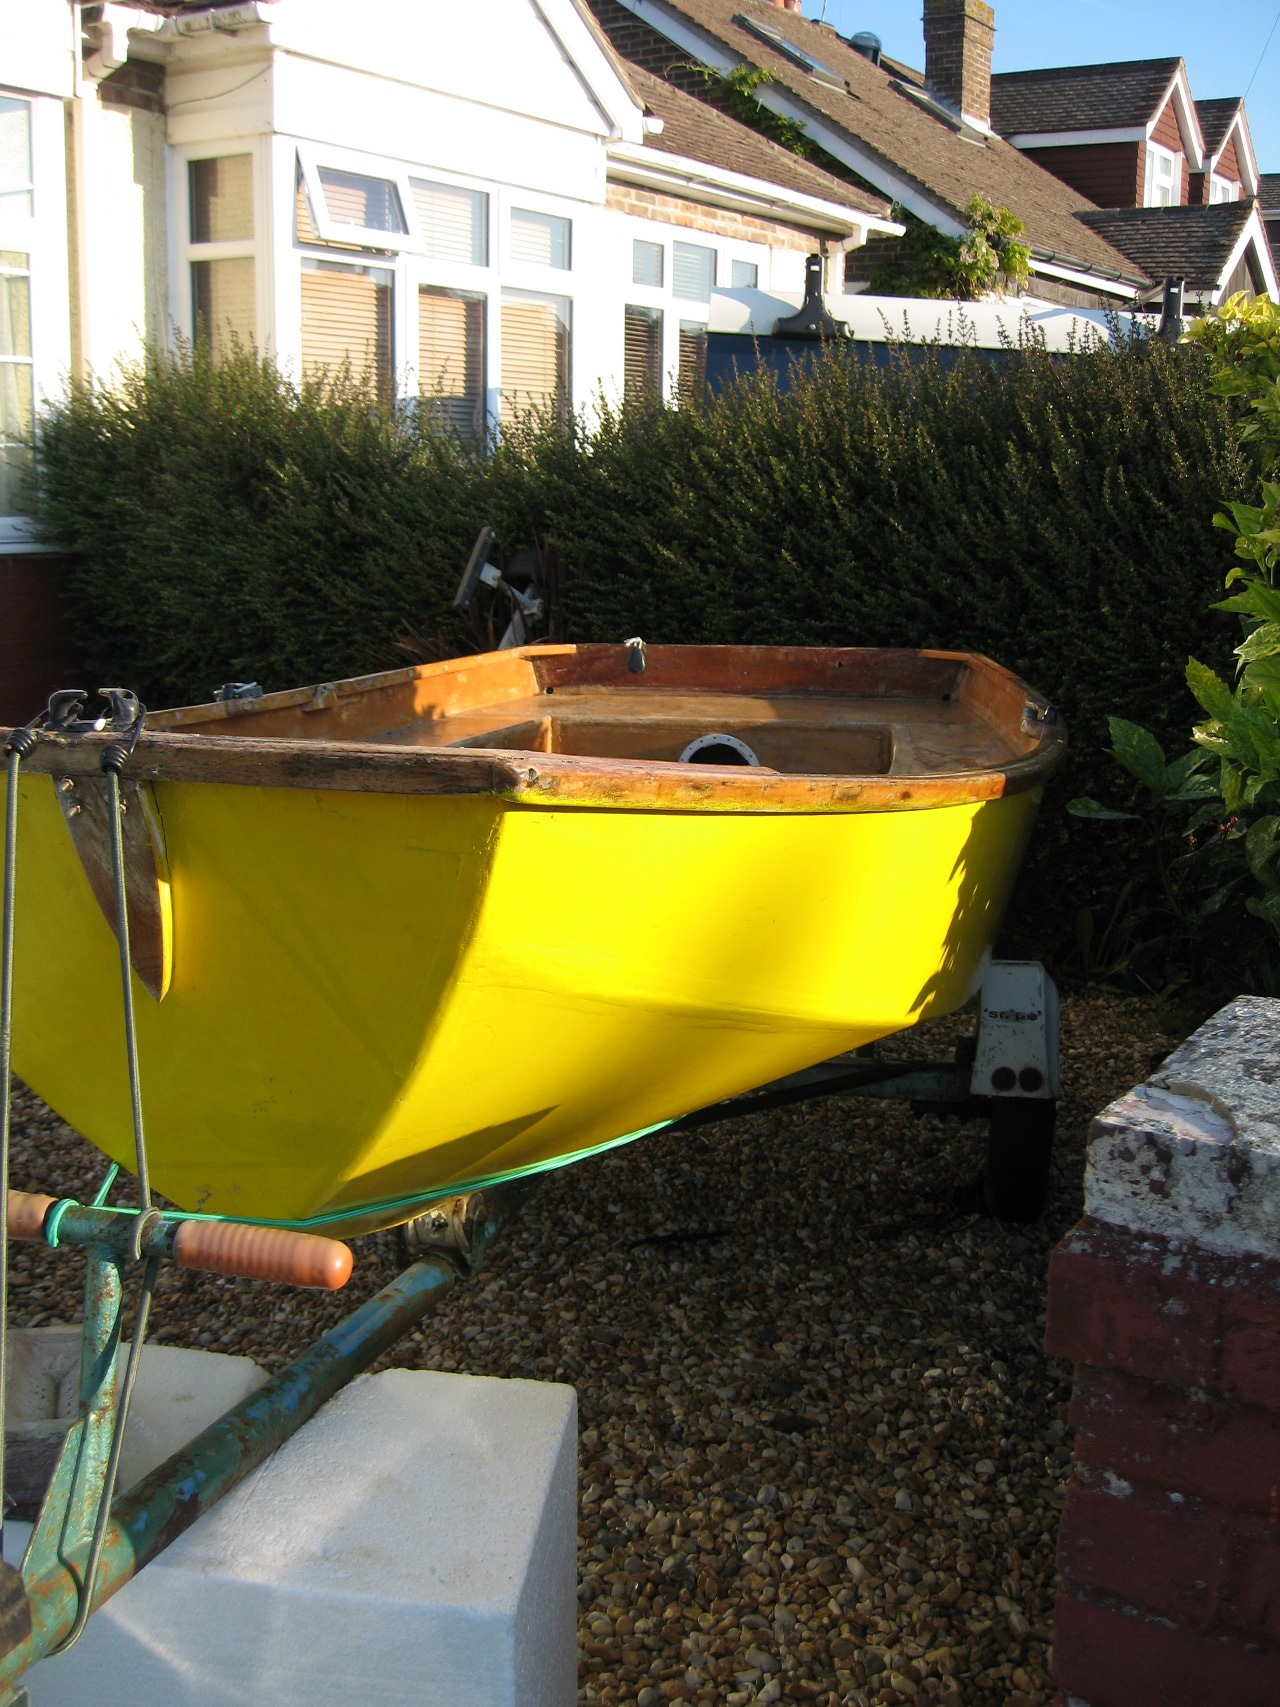 A yellow wooden Mirror dinghy on a road trailer on a drive